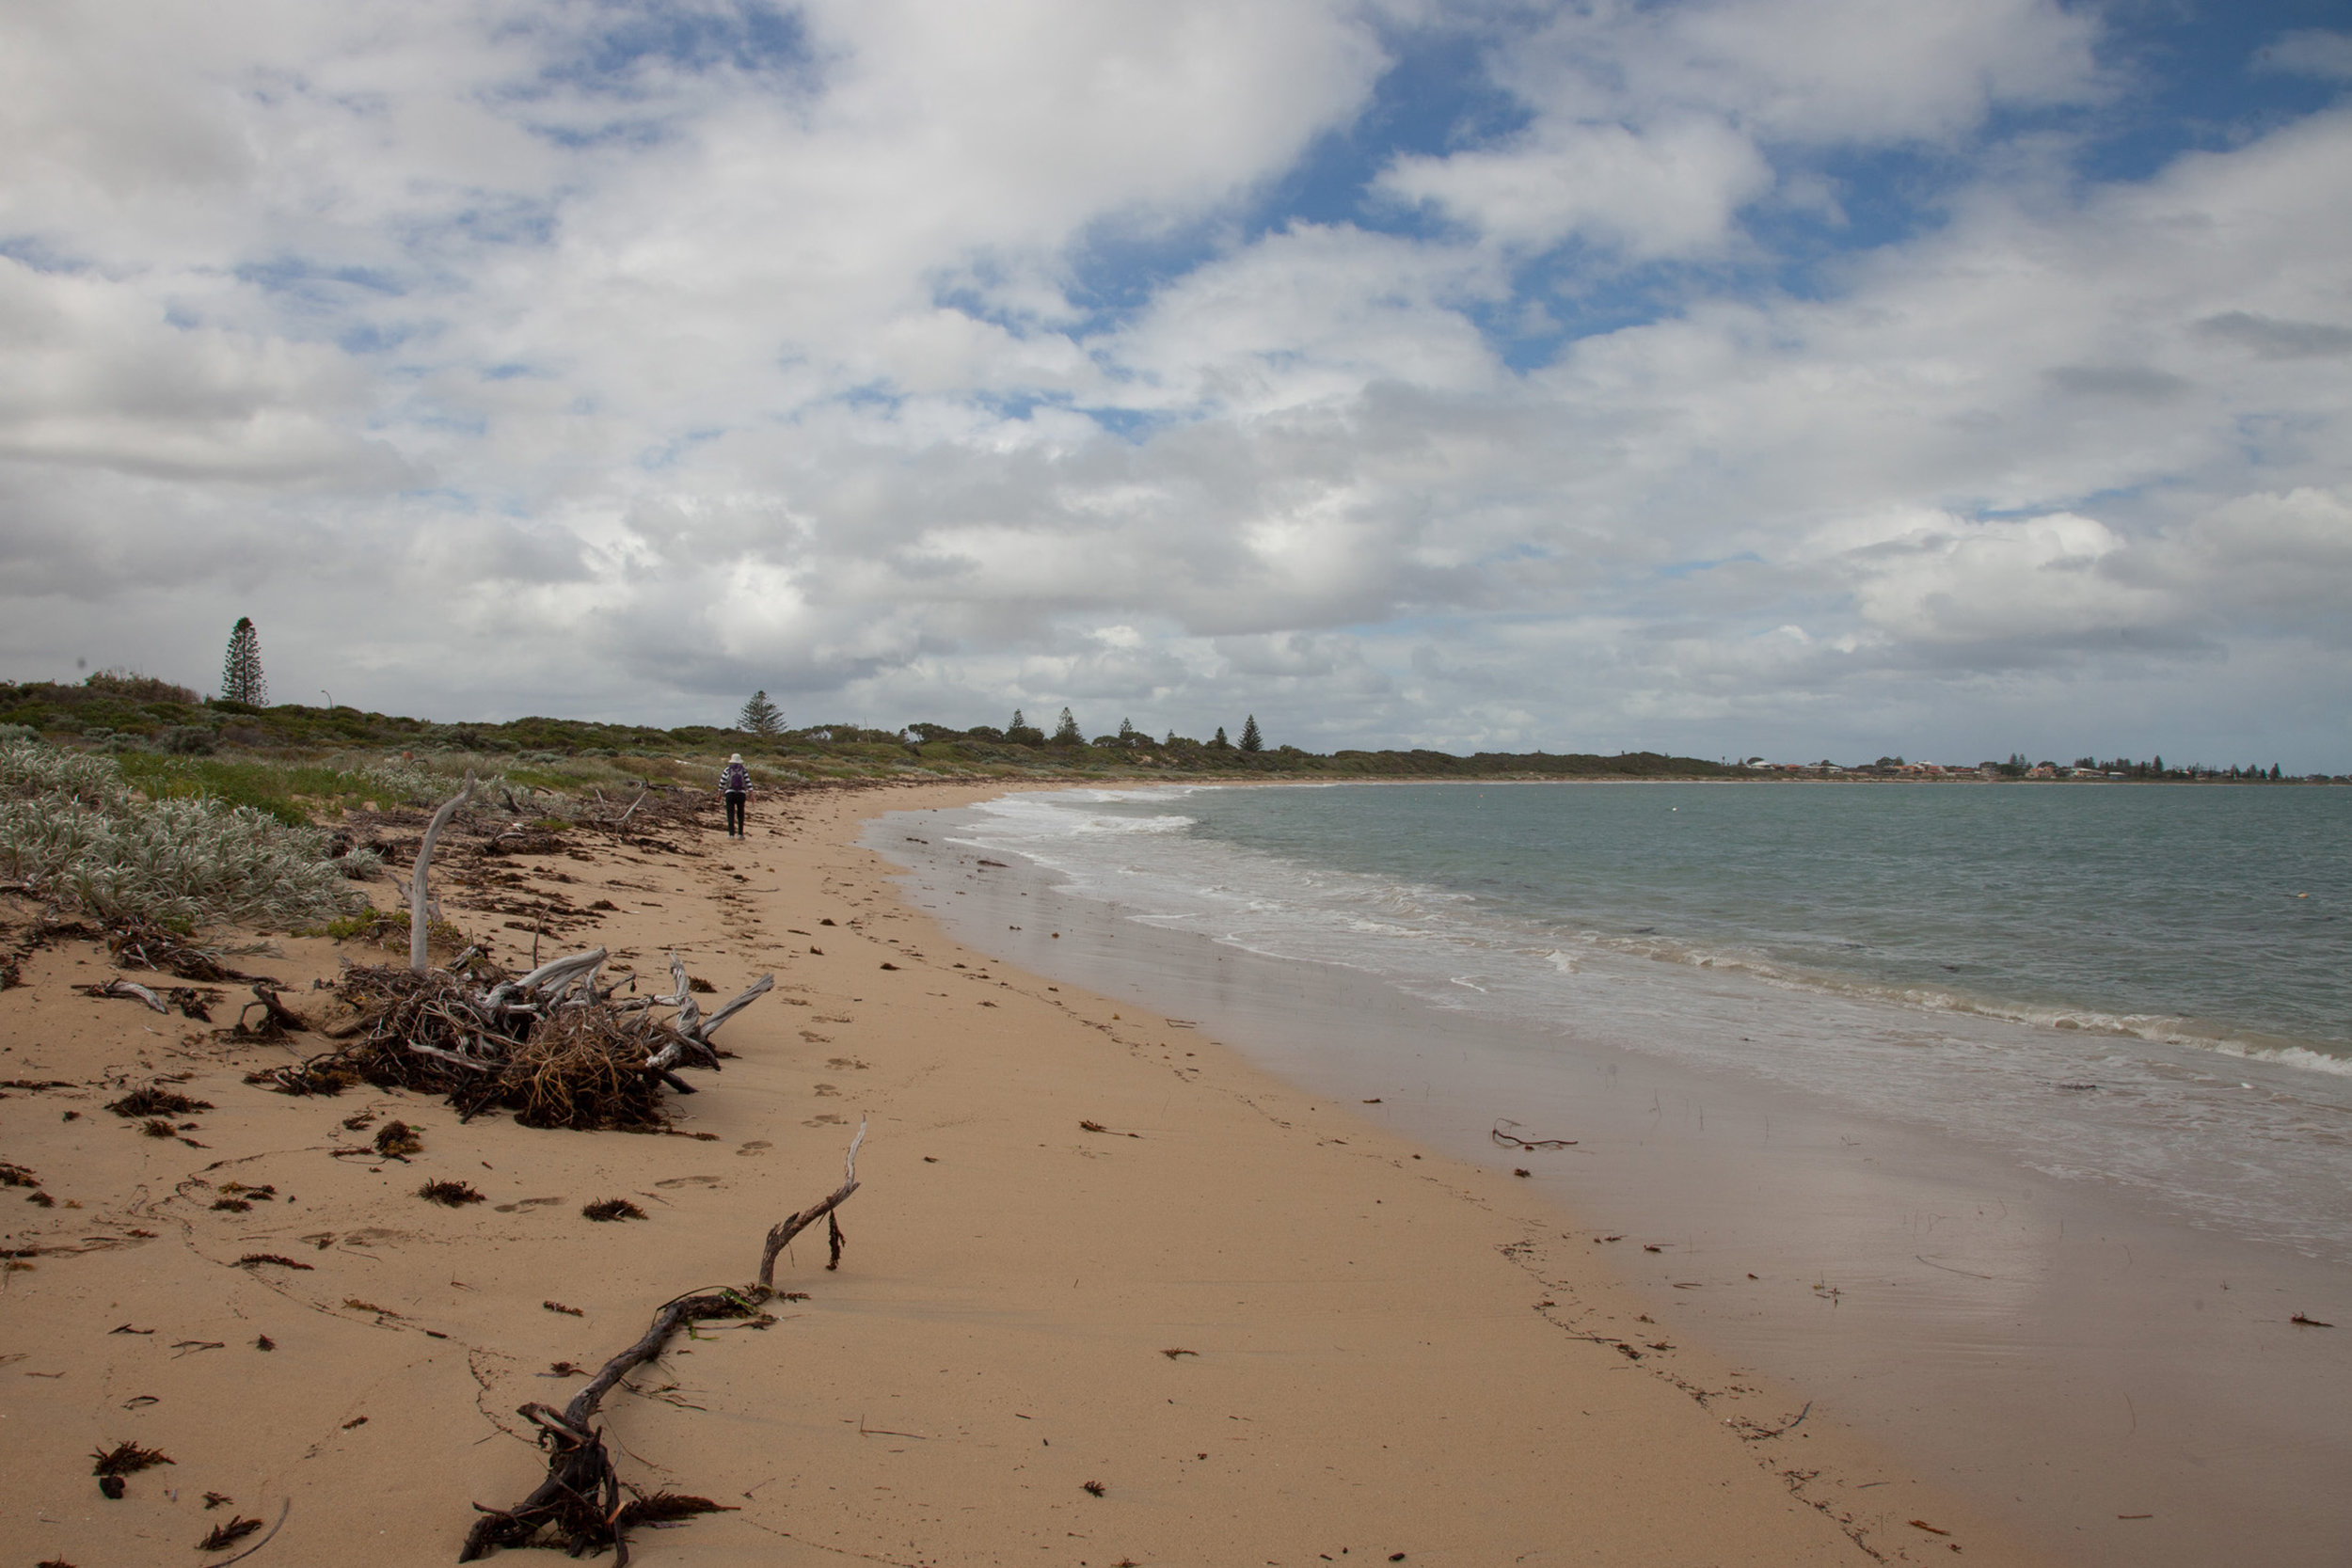 Plate 18: The last section of the beach walk to Shoalwater